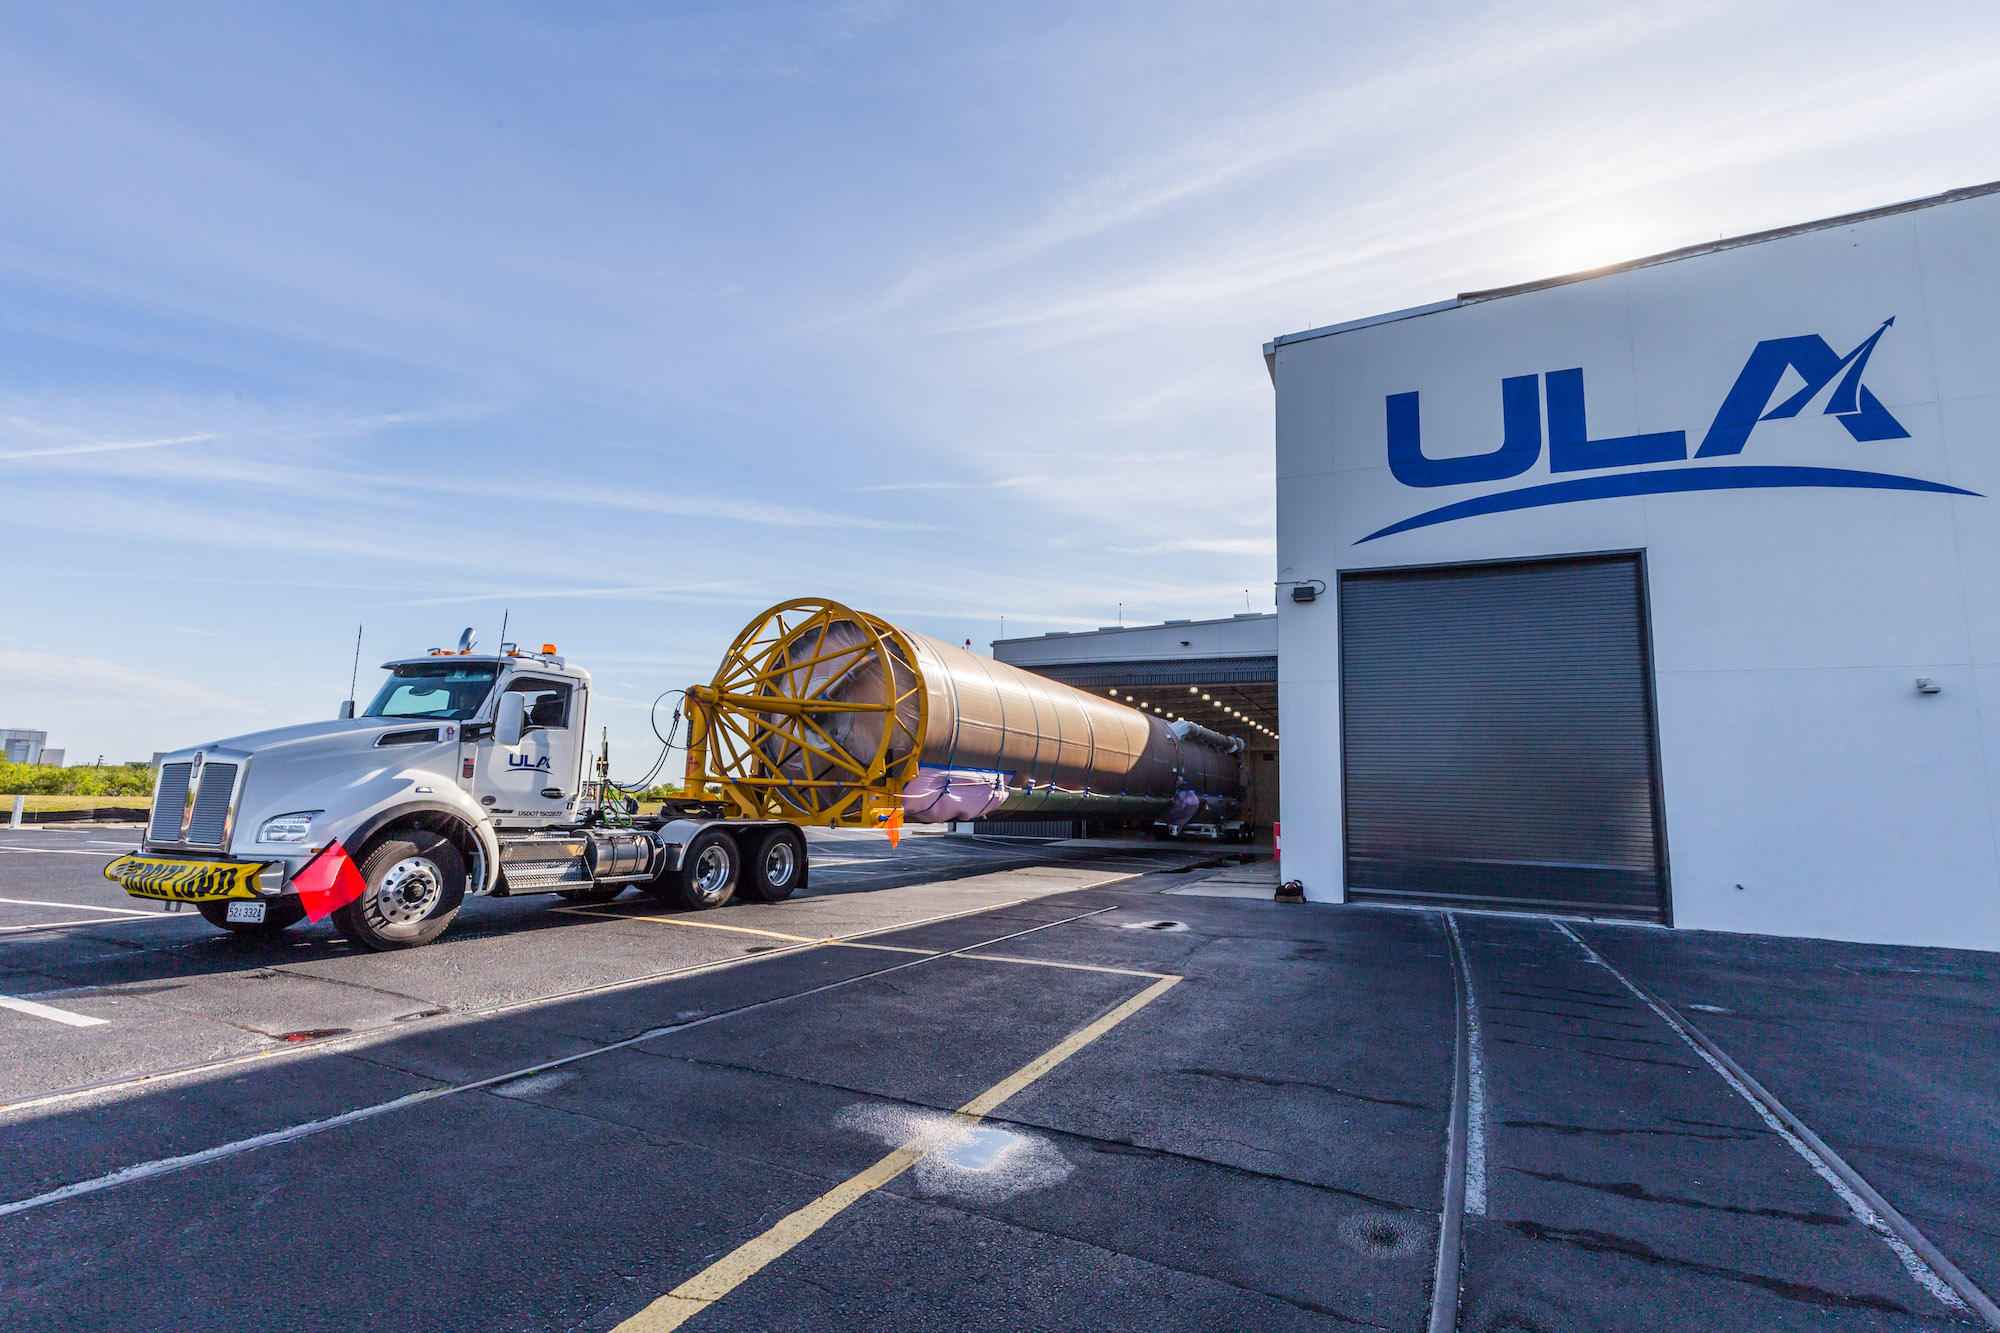 The Atlas stage arrives at the ASOC today. Photo by United Launch Alliance